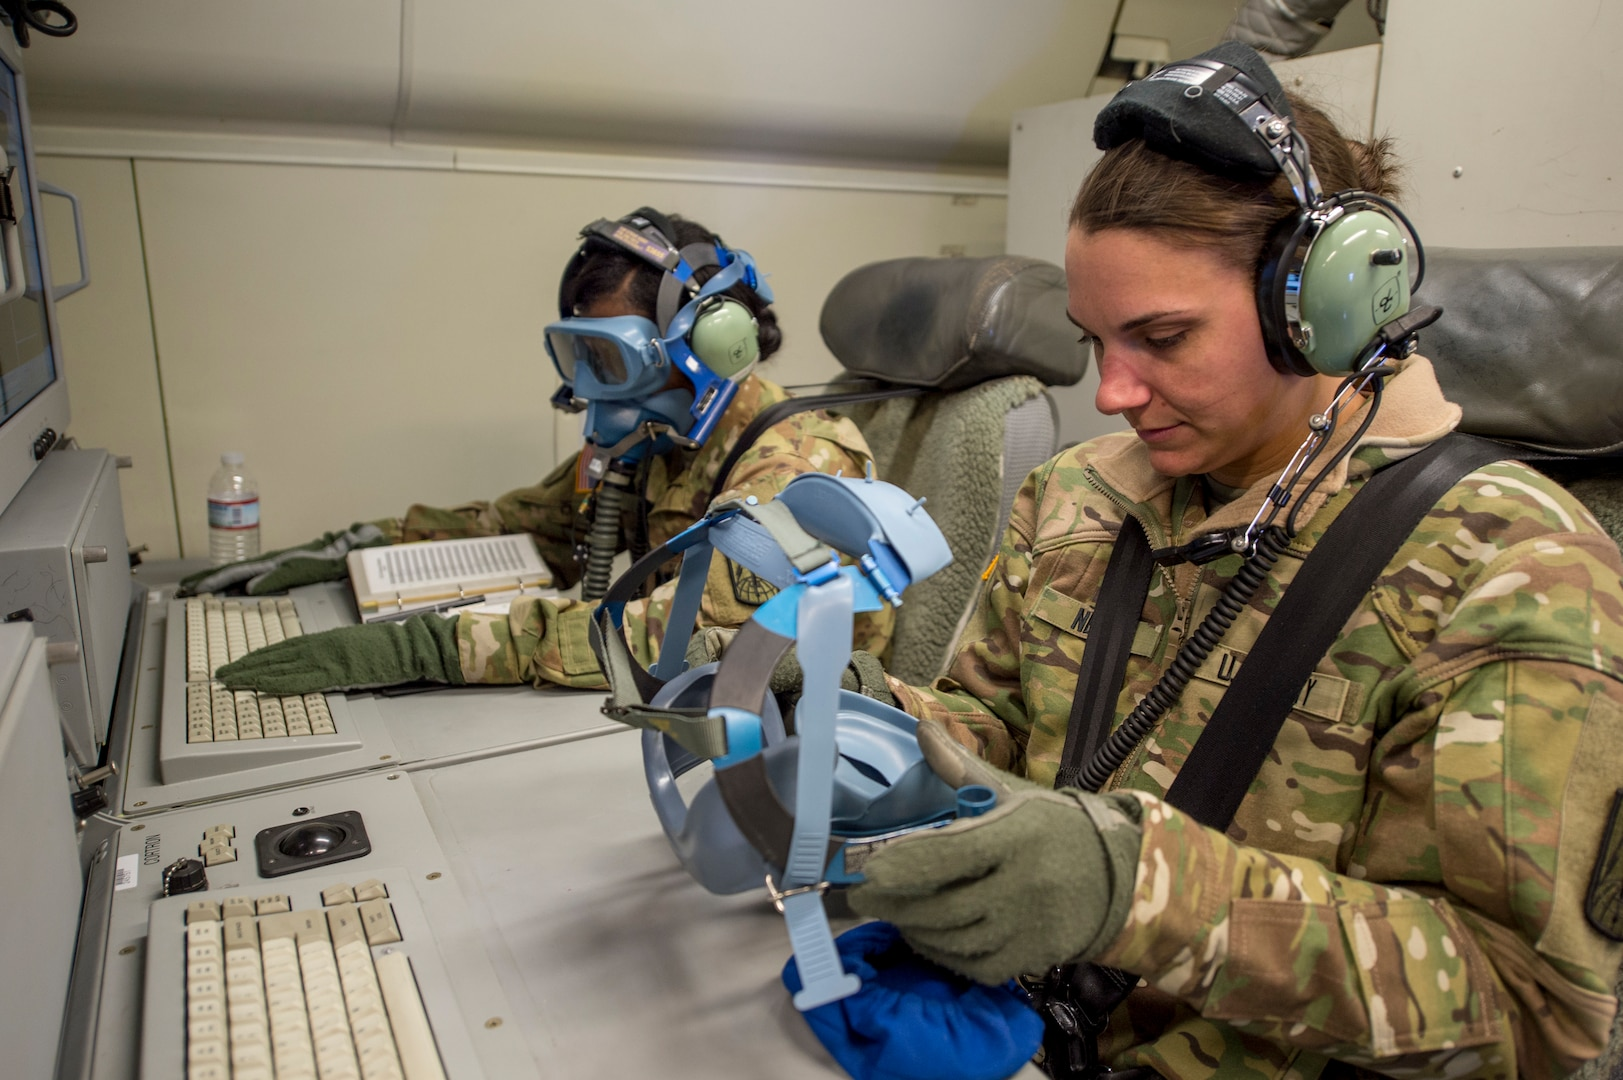 Army airborne technician systems specialist (right) and deputy mission control commander, both with Army JSTARS, participate in emergency drill onboard E-8C Joint STARS during routine training mission at Robins Air Force Base, Georgia, March 21, 2019 (U.S. Air National Guard/Nancy Goldberger)